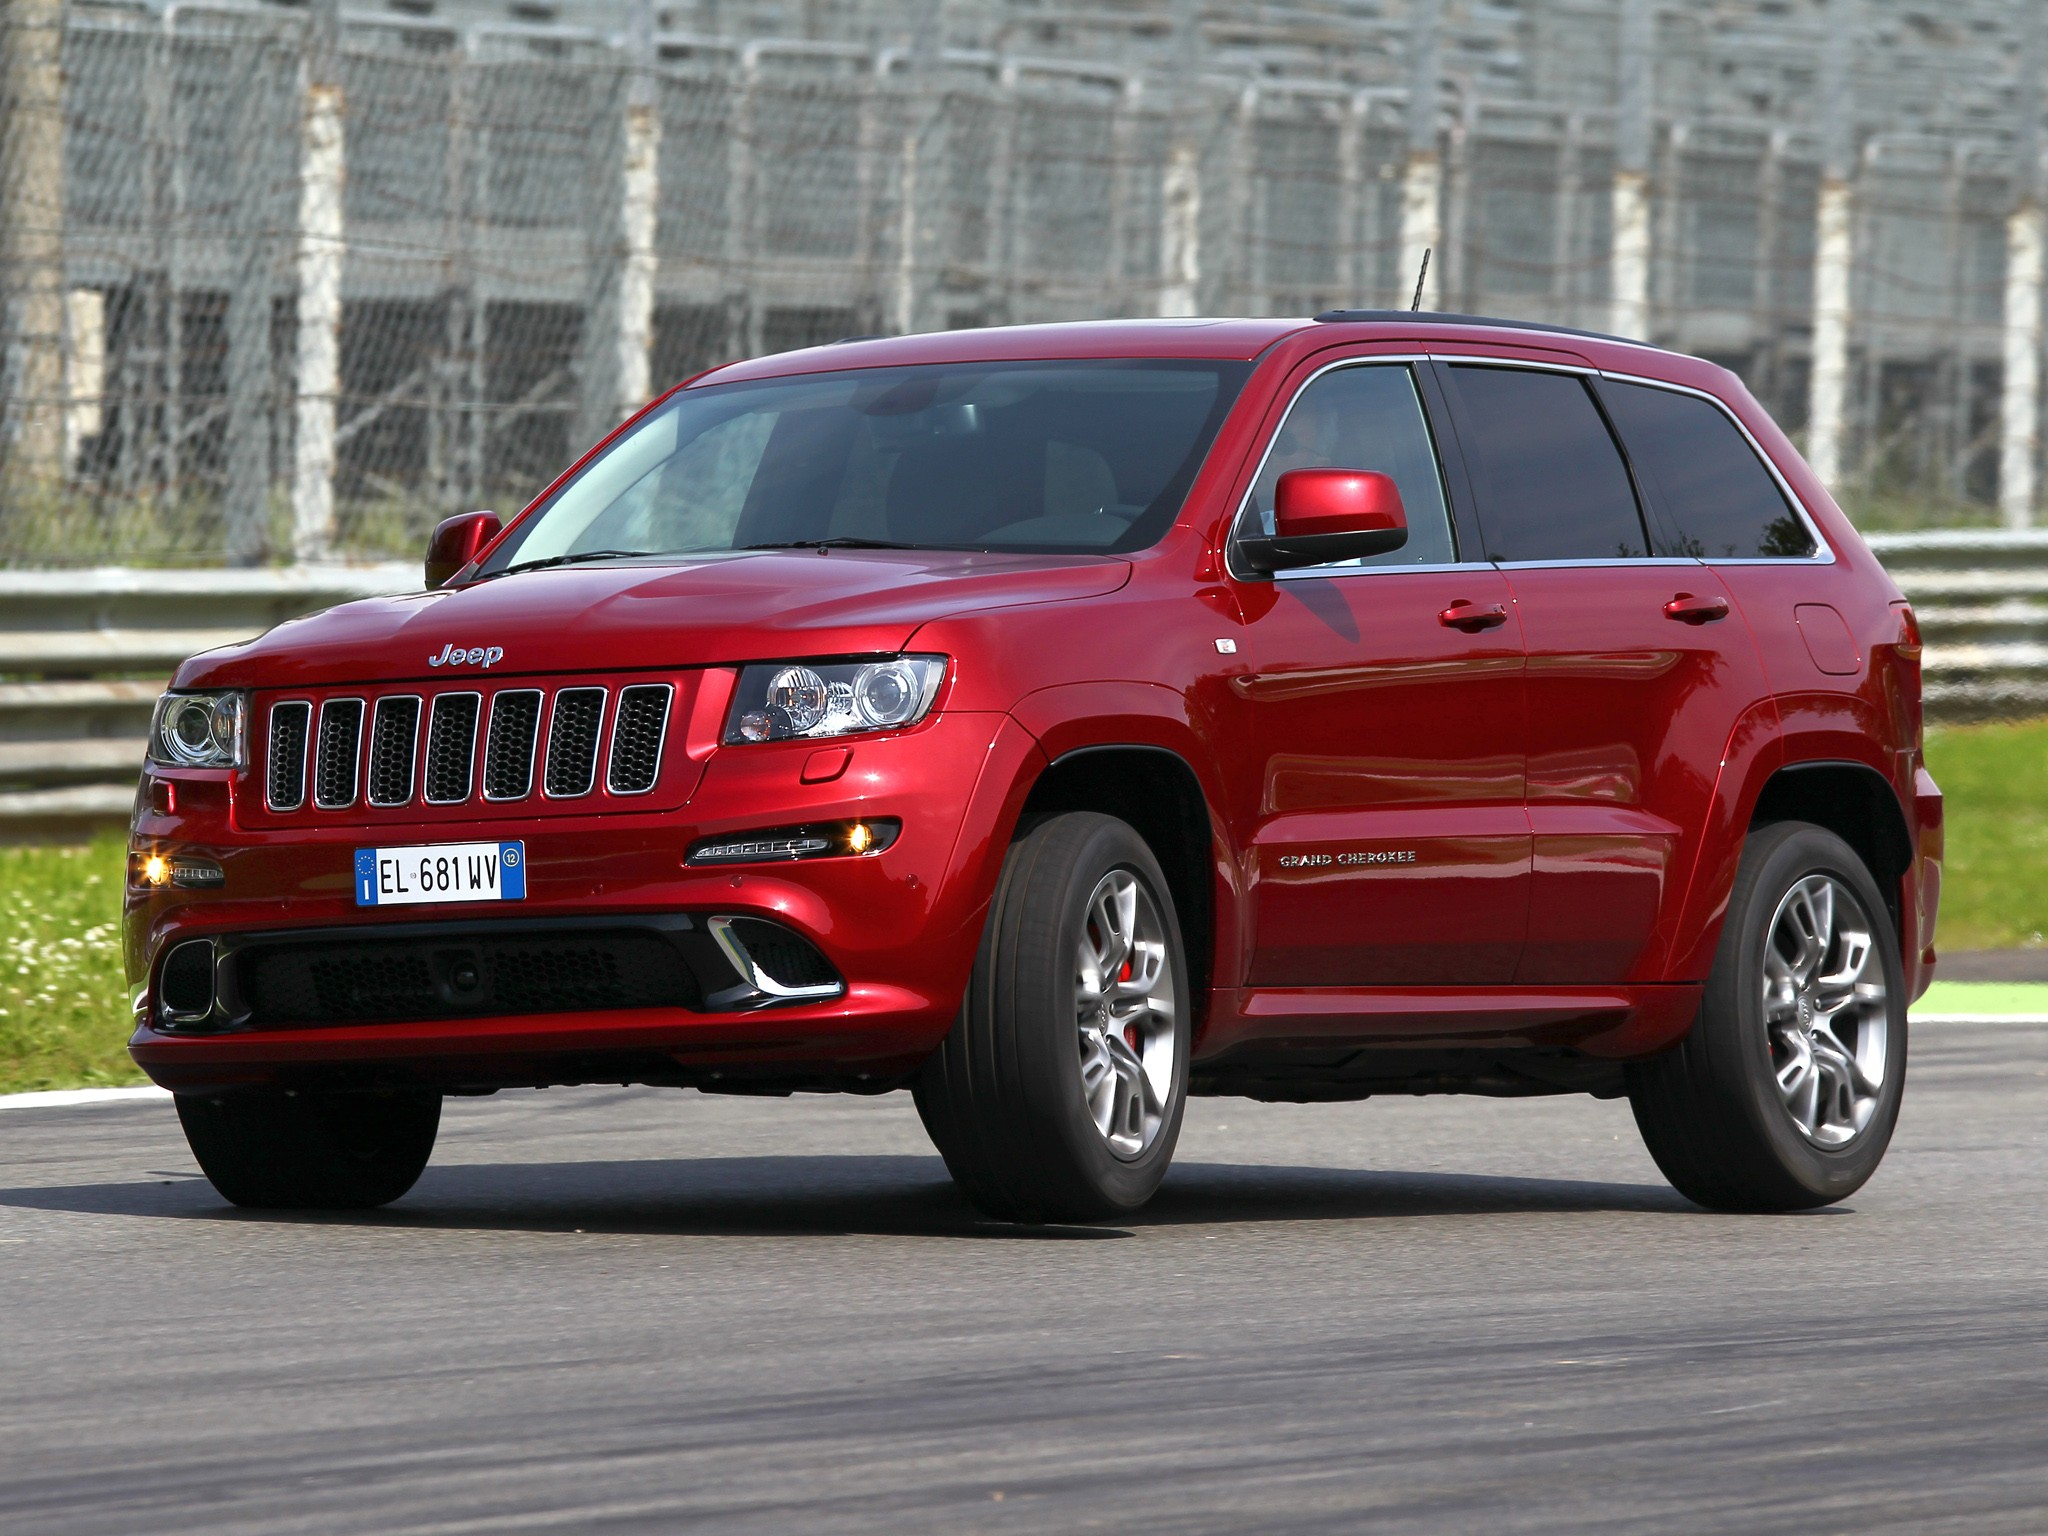 jeep grand cherokee srt 8 specs 2012 2013 2014 autoevolution. Black Bedroom Furniture Sets. Home Design Ideas